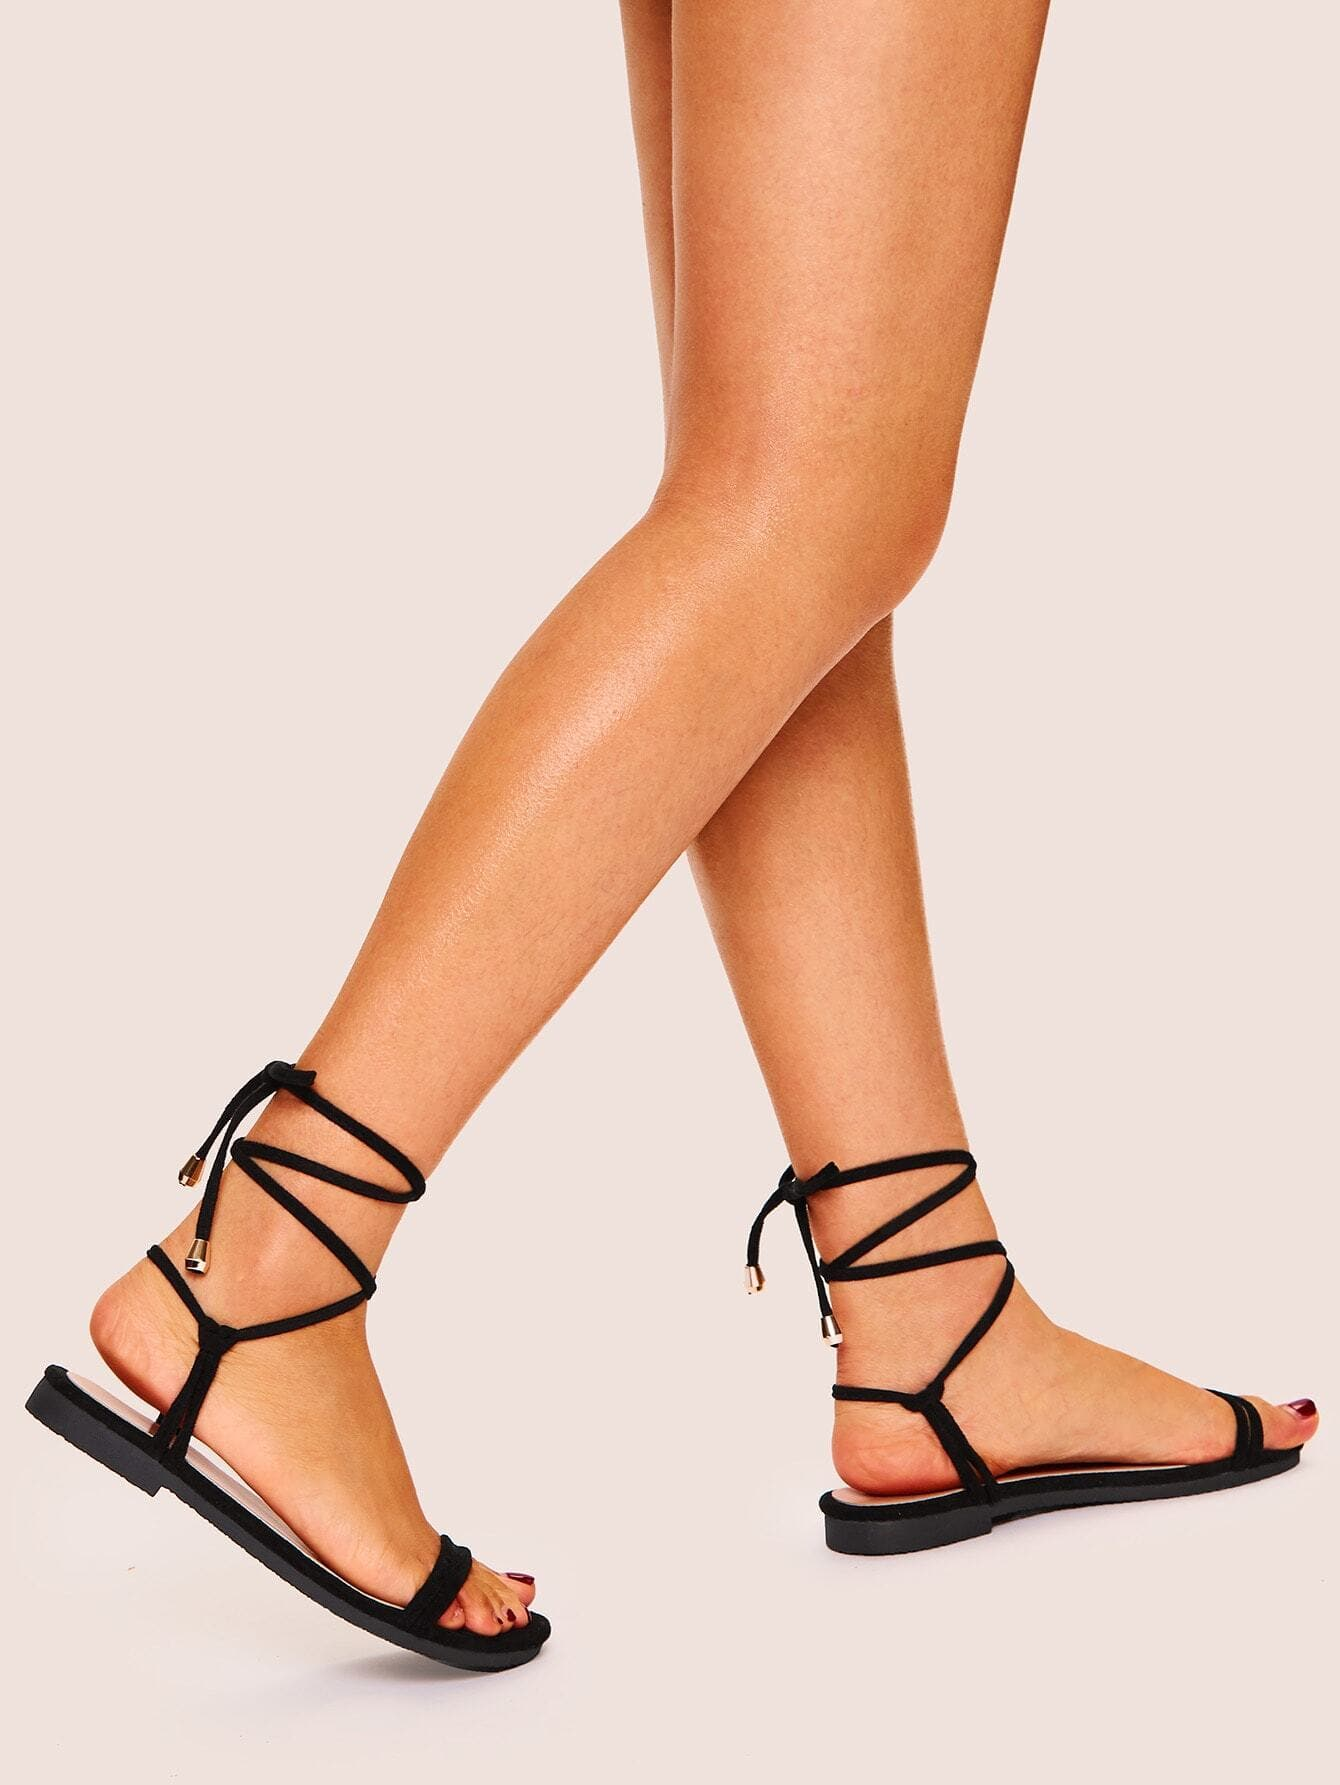 Lace-up Strappy Flat Sandals - FLJ CORPORATIONS